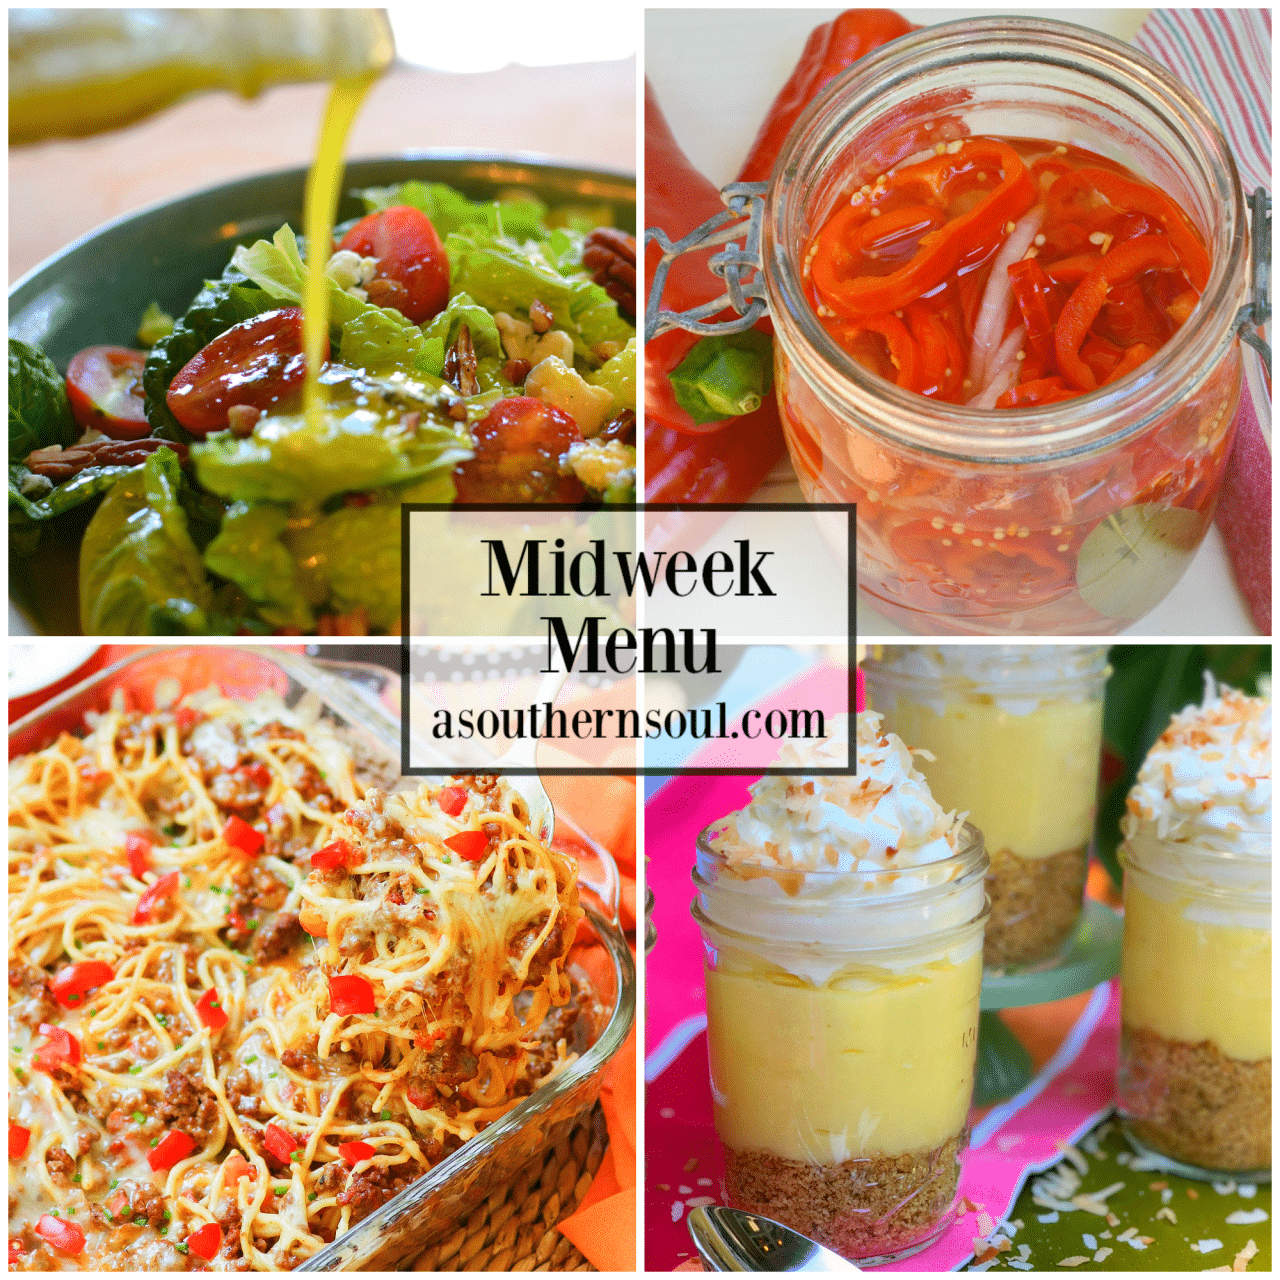 Midweek Menu #72 has four easy to make recipes for meal planning success! Don't let a busy week get you distracted. Getting a great homecooked meal on the table for your family is easier than you think with Midweek Menu. This week's menu is super delicious and fun! Yep, meal planning, cooking and sitting down …